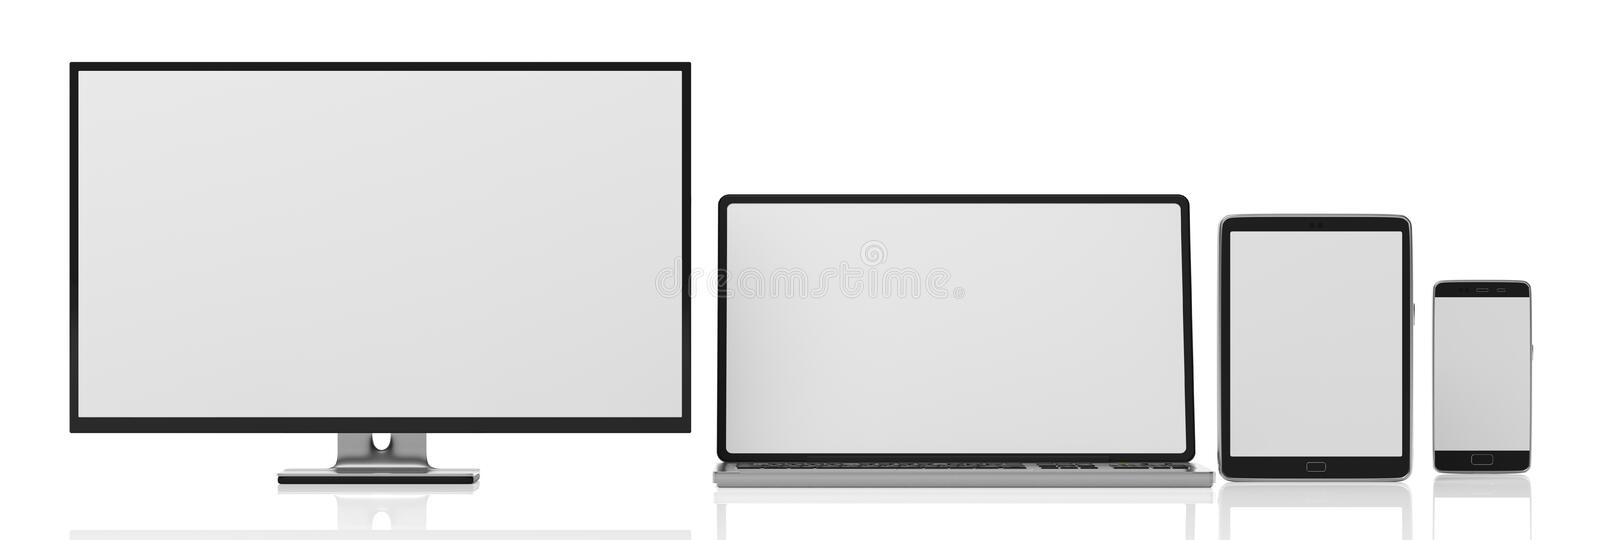 Set of realistic blank monitors. Computer monitor, laptop, tablet and smartphone isolated on white background, copy space. 3d illu. Set of realistic blank royalty free illustration